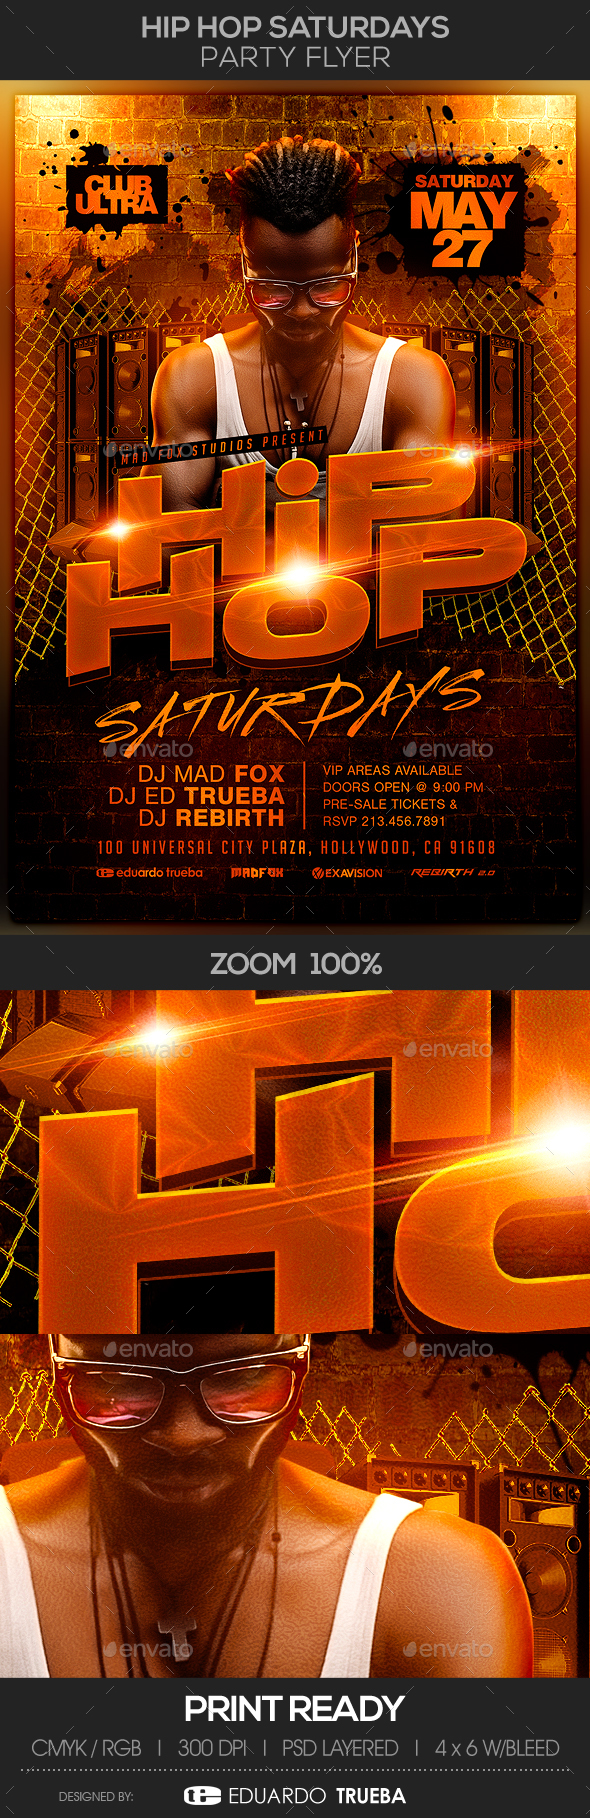 Hip Hop Saturdays Party Flyer - Clubs & Parties Events